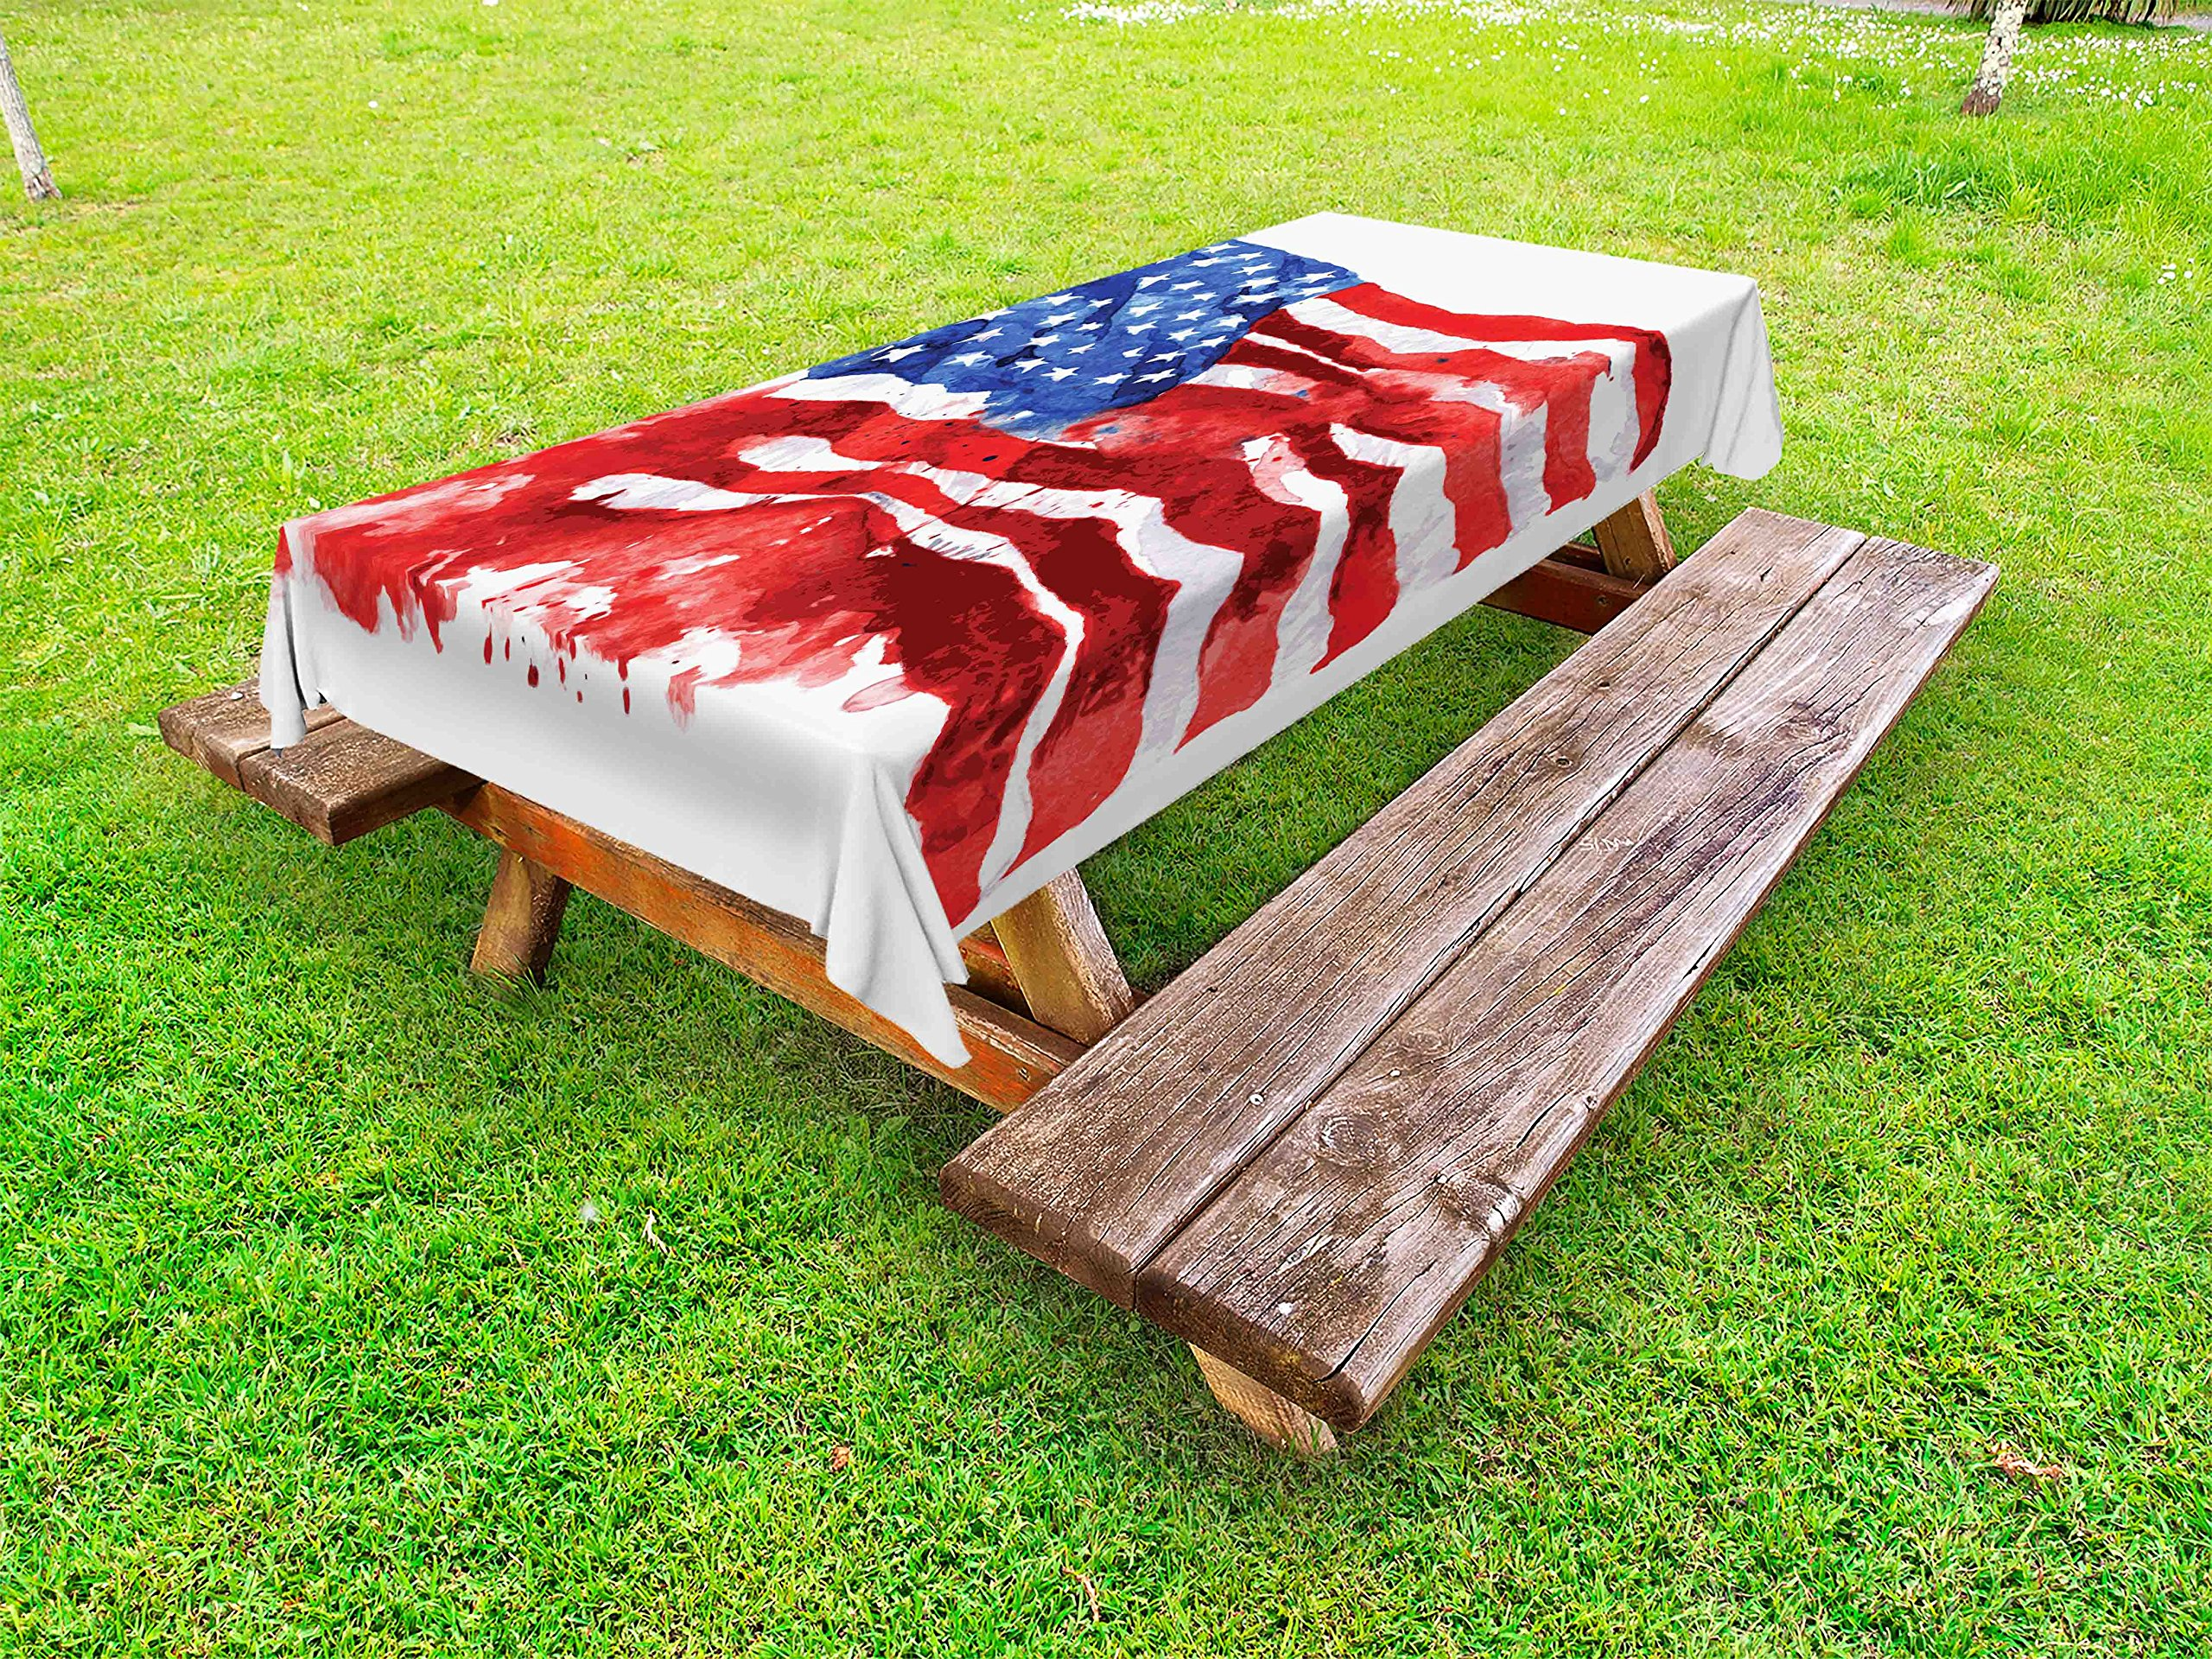 Ambesonne American Outdoor Tablecloth, Flag of America Watercolor Splash National Independence Symbol Abstract Art, Decorative Washable Picnic Table Cloth, 58 X 120 inches, Red Blue White by Ambesonne